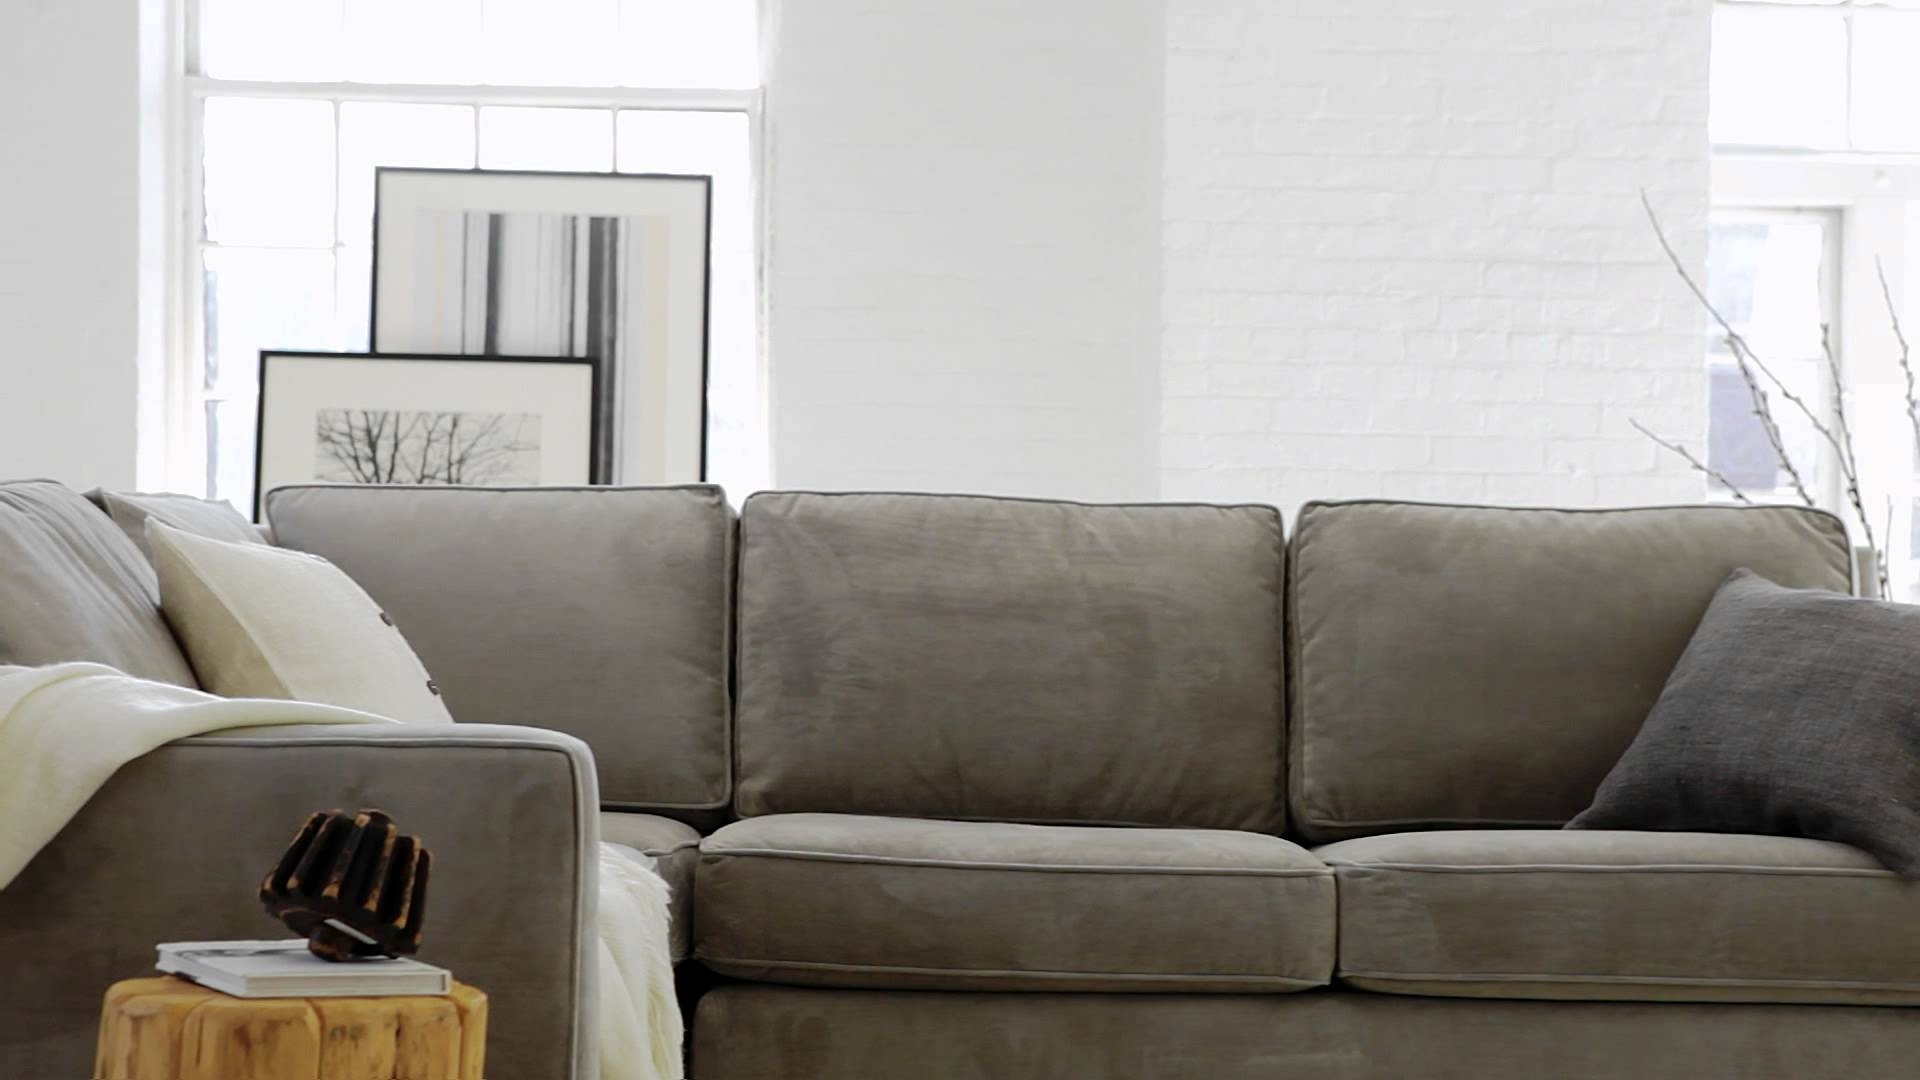 West Elm Sectional Sofas Within Newest The Henry Collection: Classic, Contemporary Living Room Furniture (View 14 of 15)